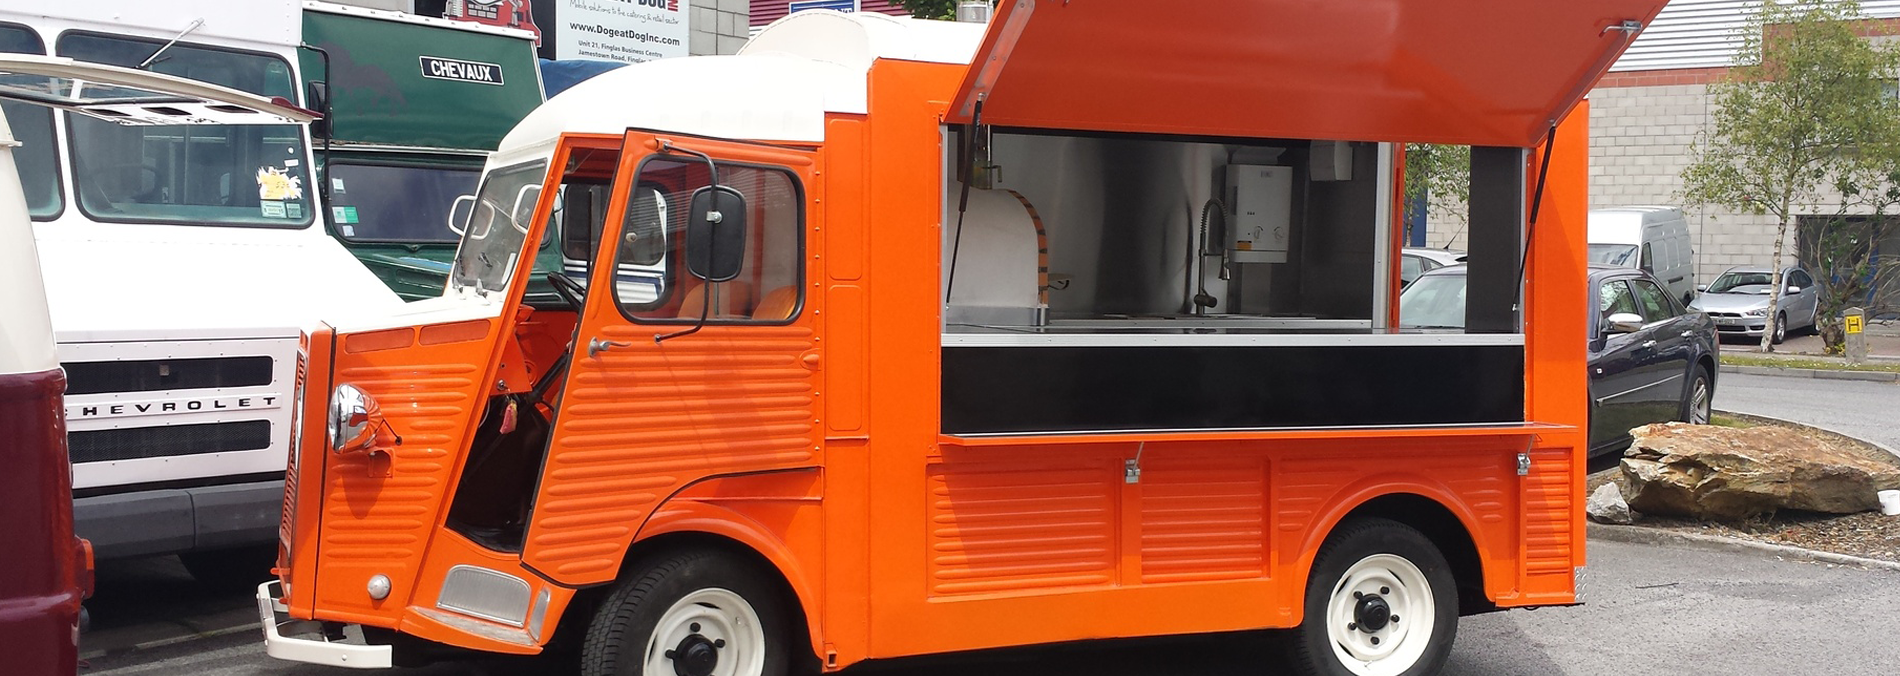 8df66a00f2 Mobile Catering Van Insurance